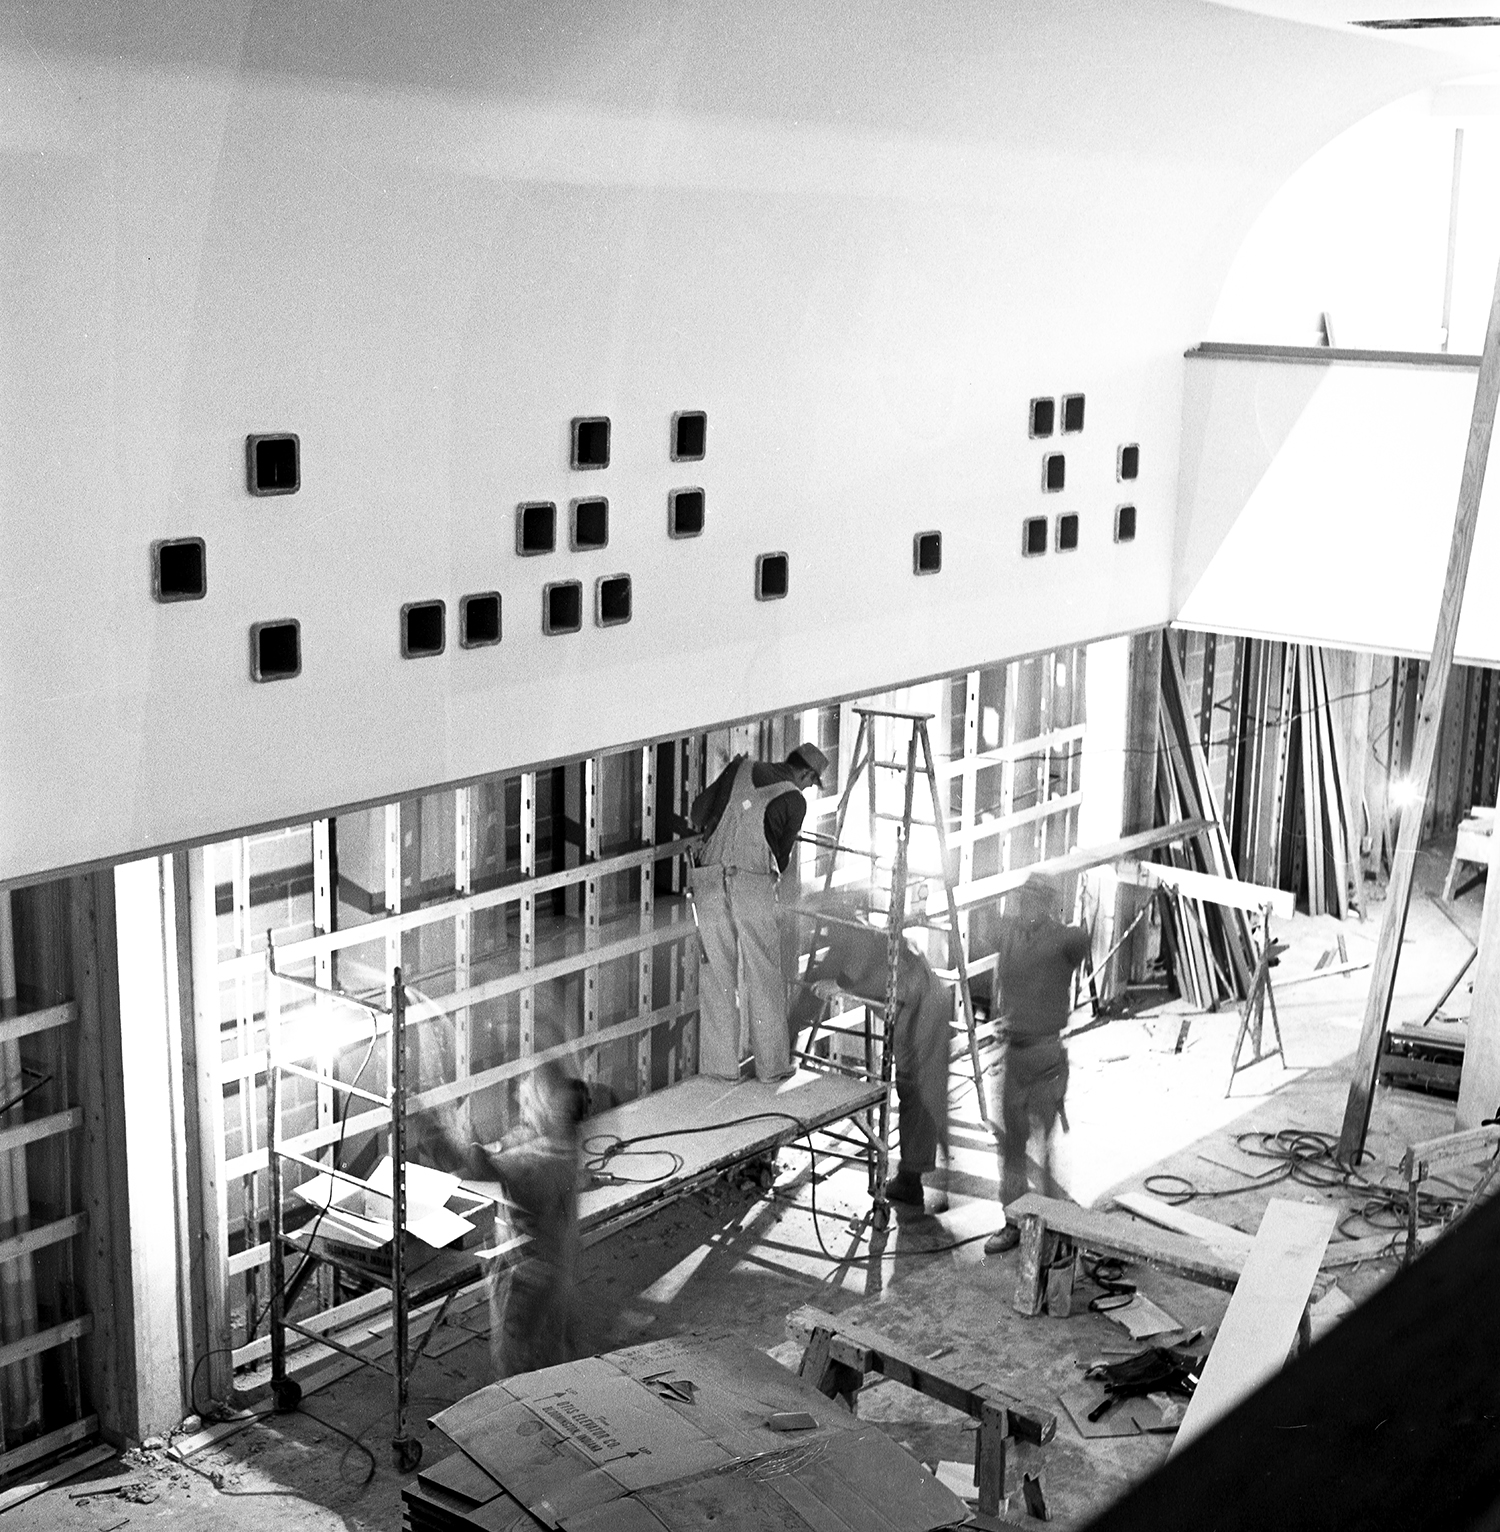 Old State Capitol State Historic Site, workers in the new home for the Illinois State Historical Library underneath the Old Capitol, preparations before official opening ceremony on Dec. 3, 1968. Photographed Dec. 2, 1968. File/The State Journal-Register